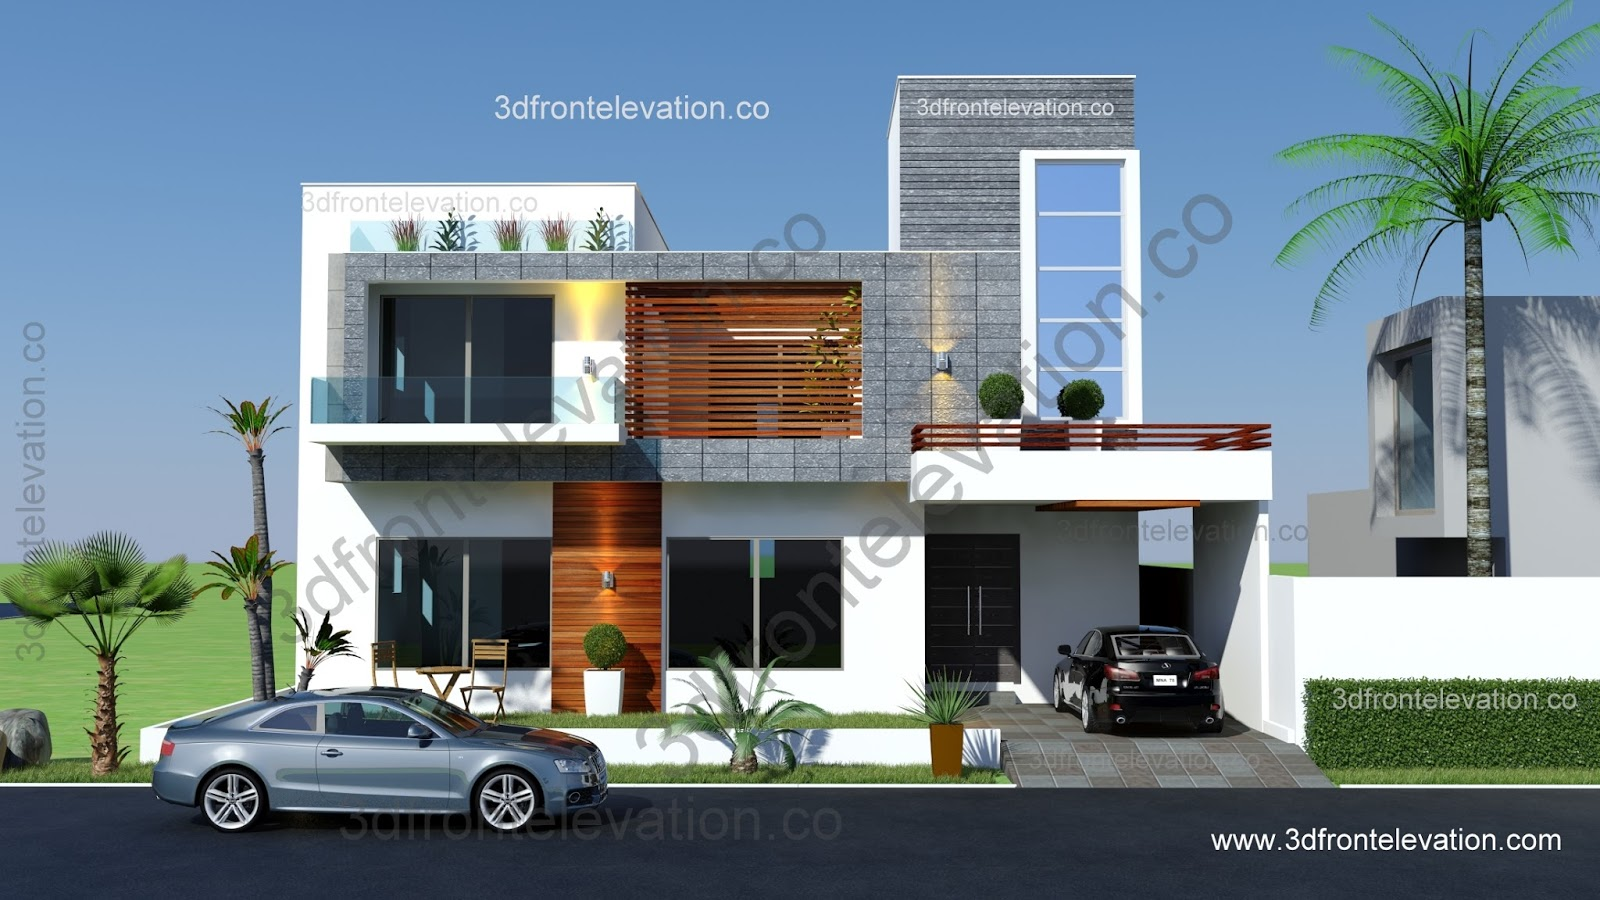 3d front 5 marlaz 8 marla 10 marla 12 marla for House front view designs pictures